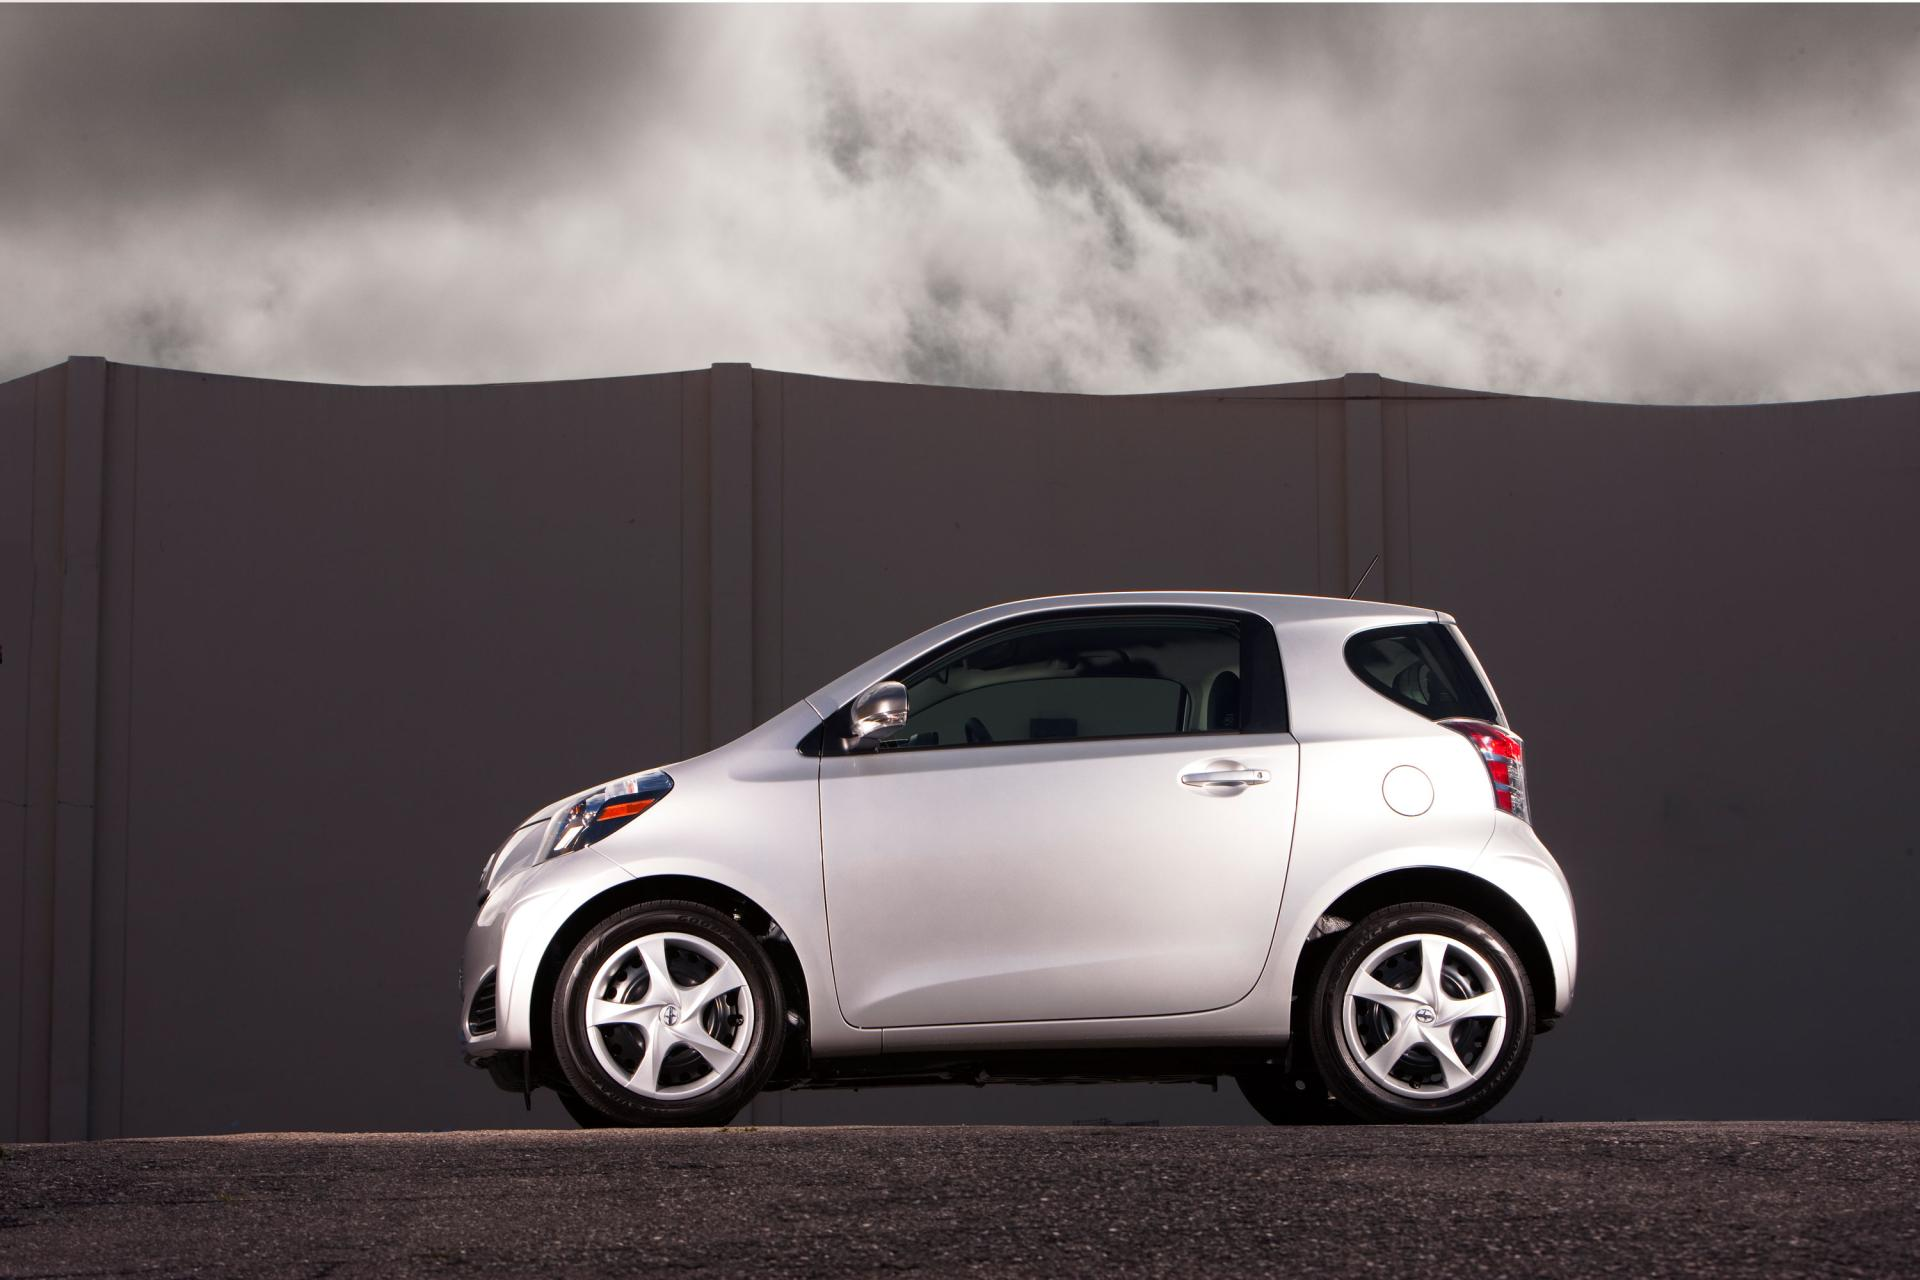 2012 Scion iQ technical and mechanical specifications